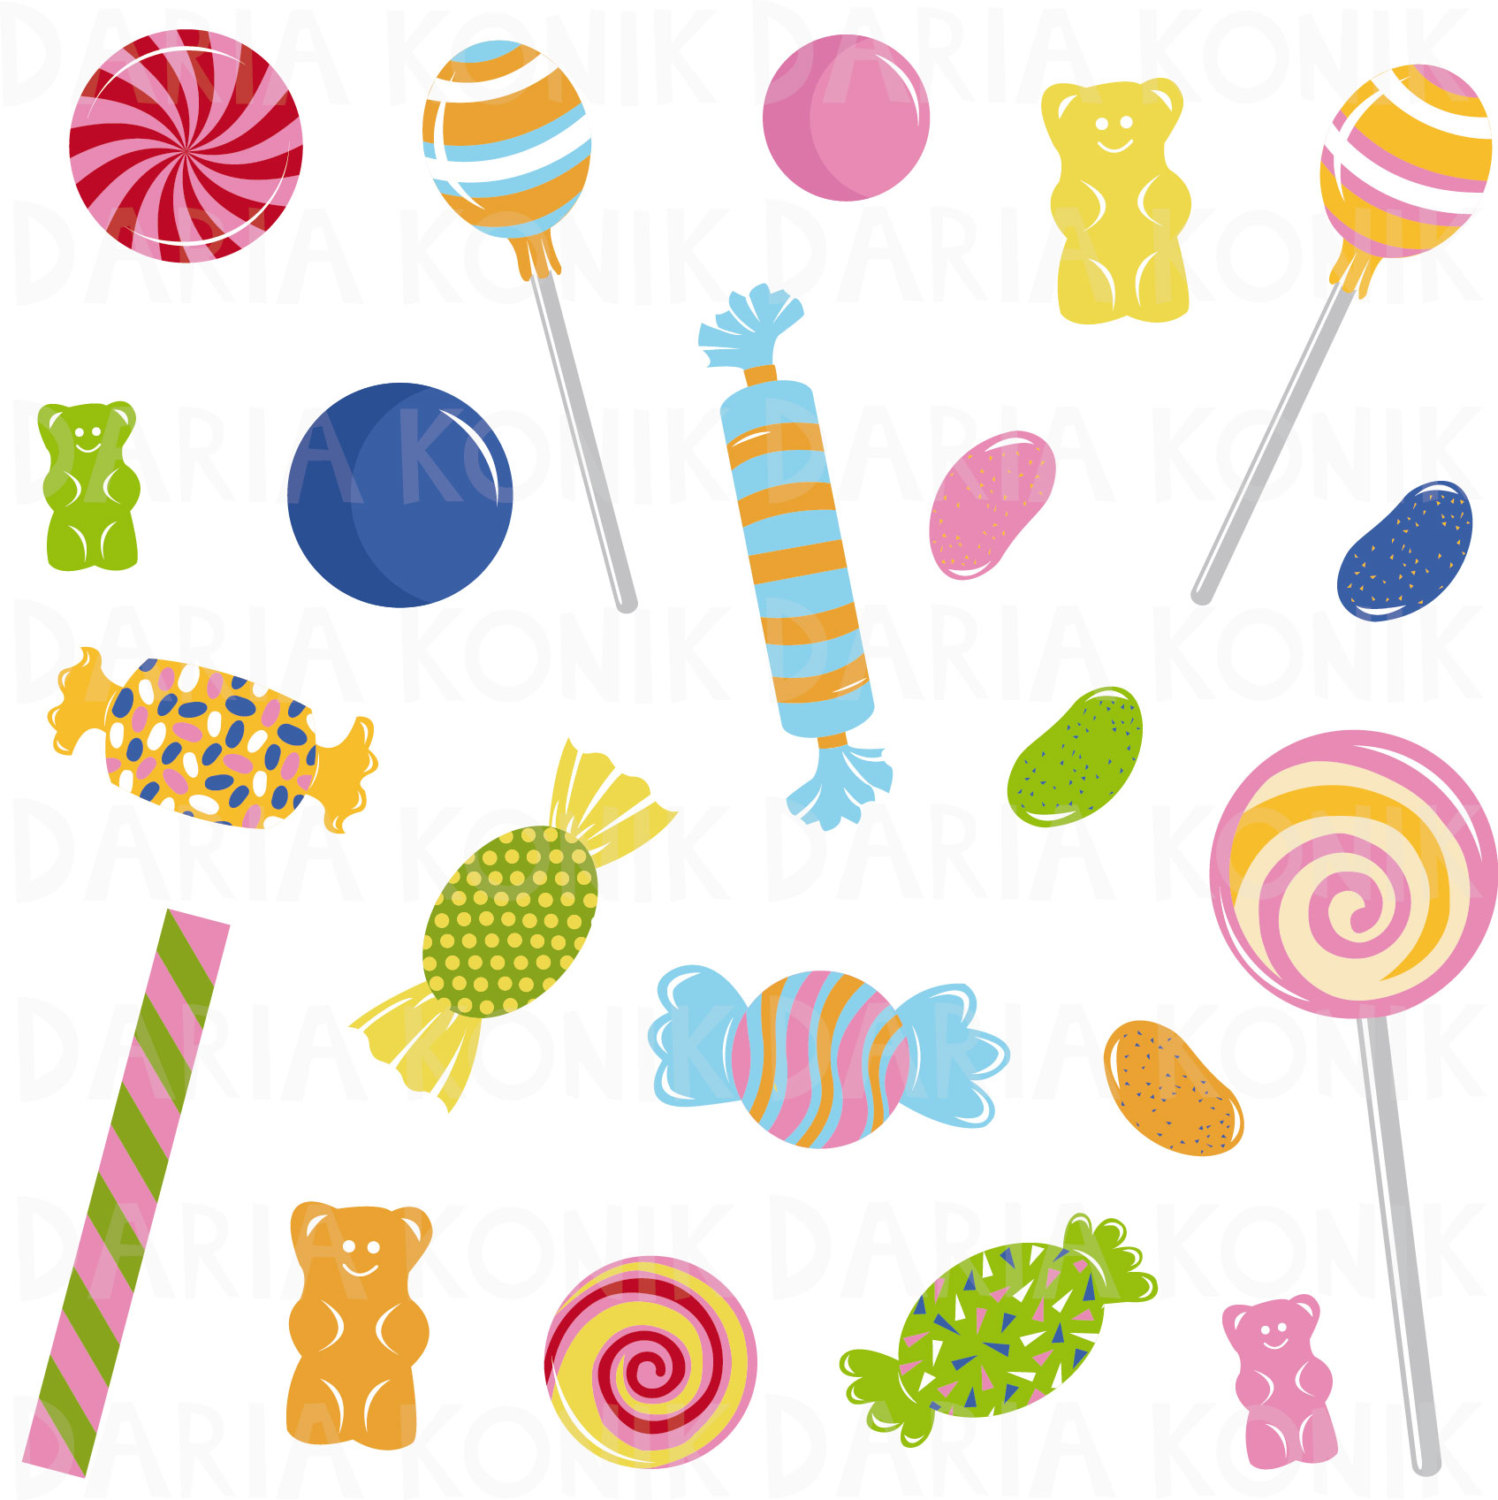 hight resolution of 1498x1500 candy clip art set sweets clipart jelly beans gummy bears